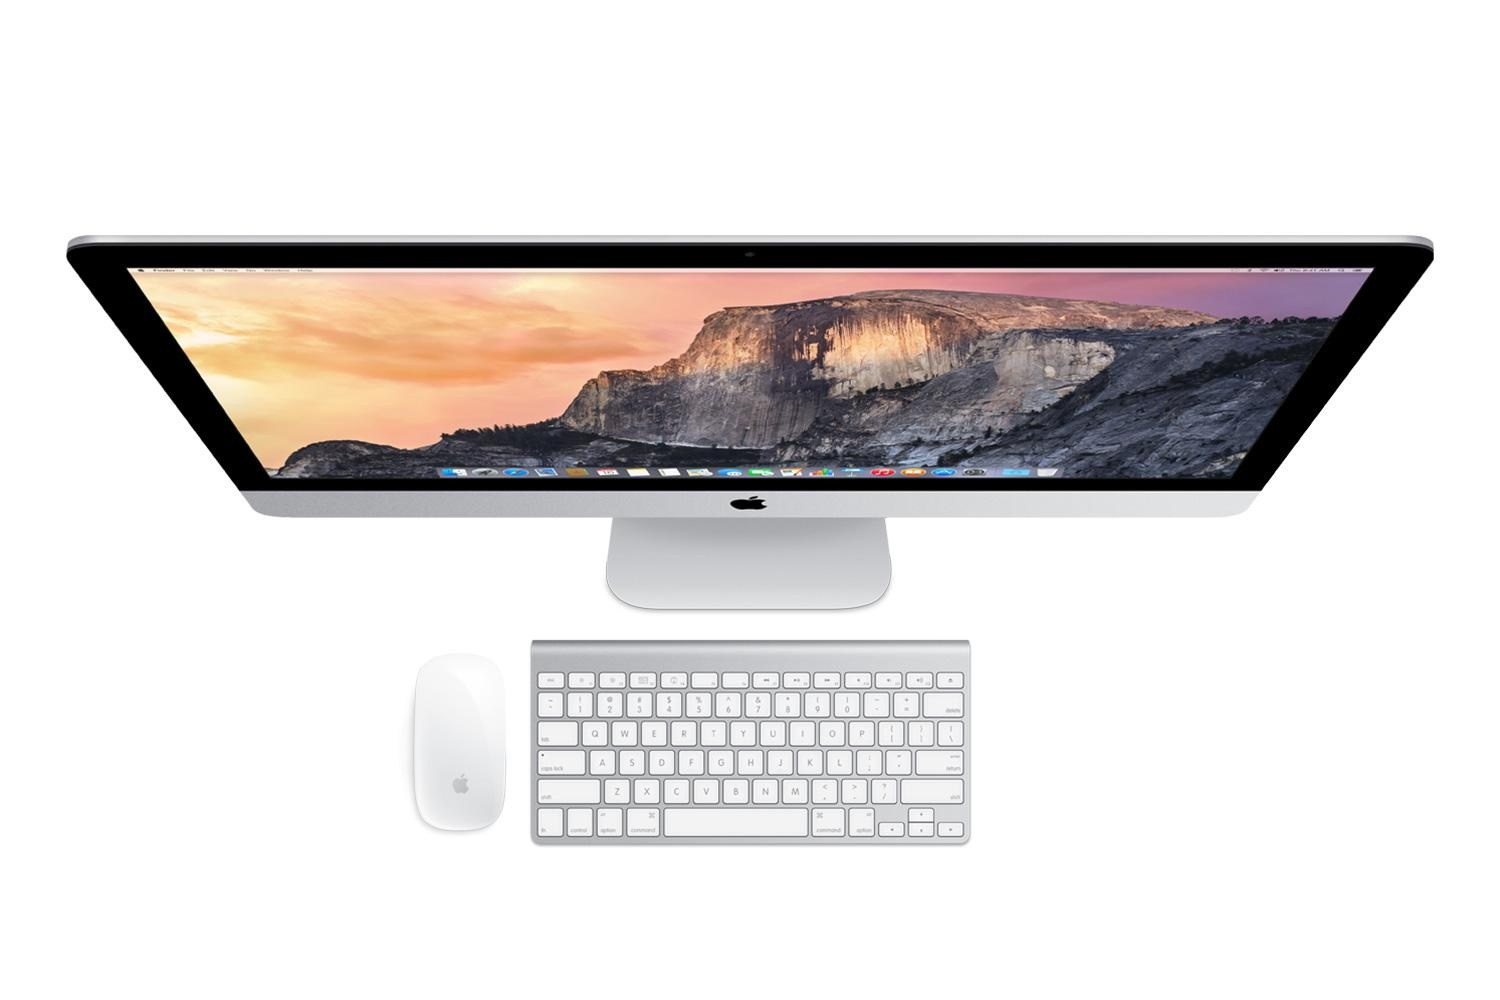 27-inch-imac-with-retina-5k-display-included_hardware-2-1500x1000